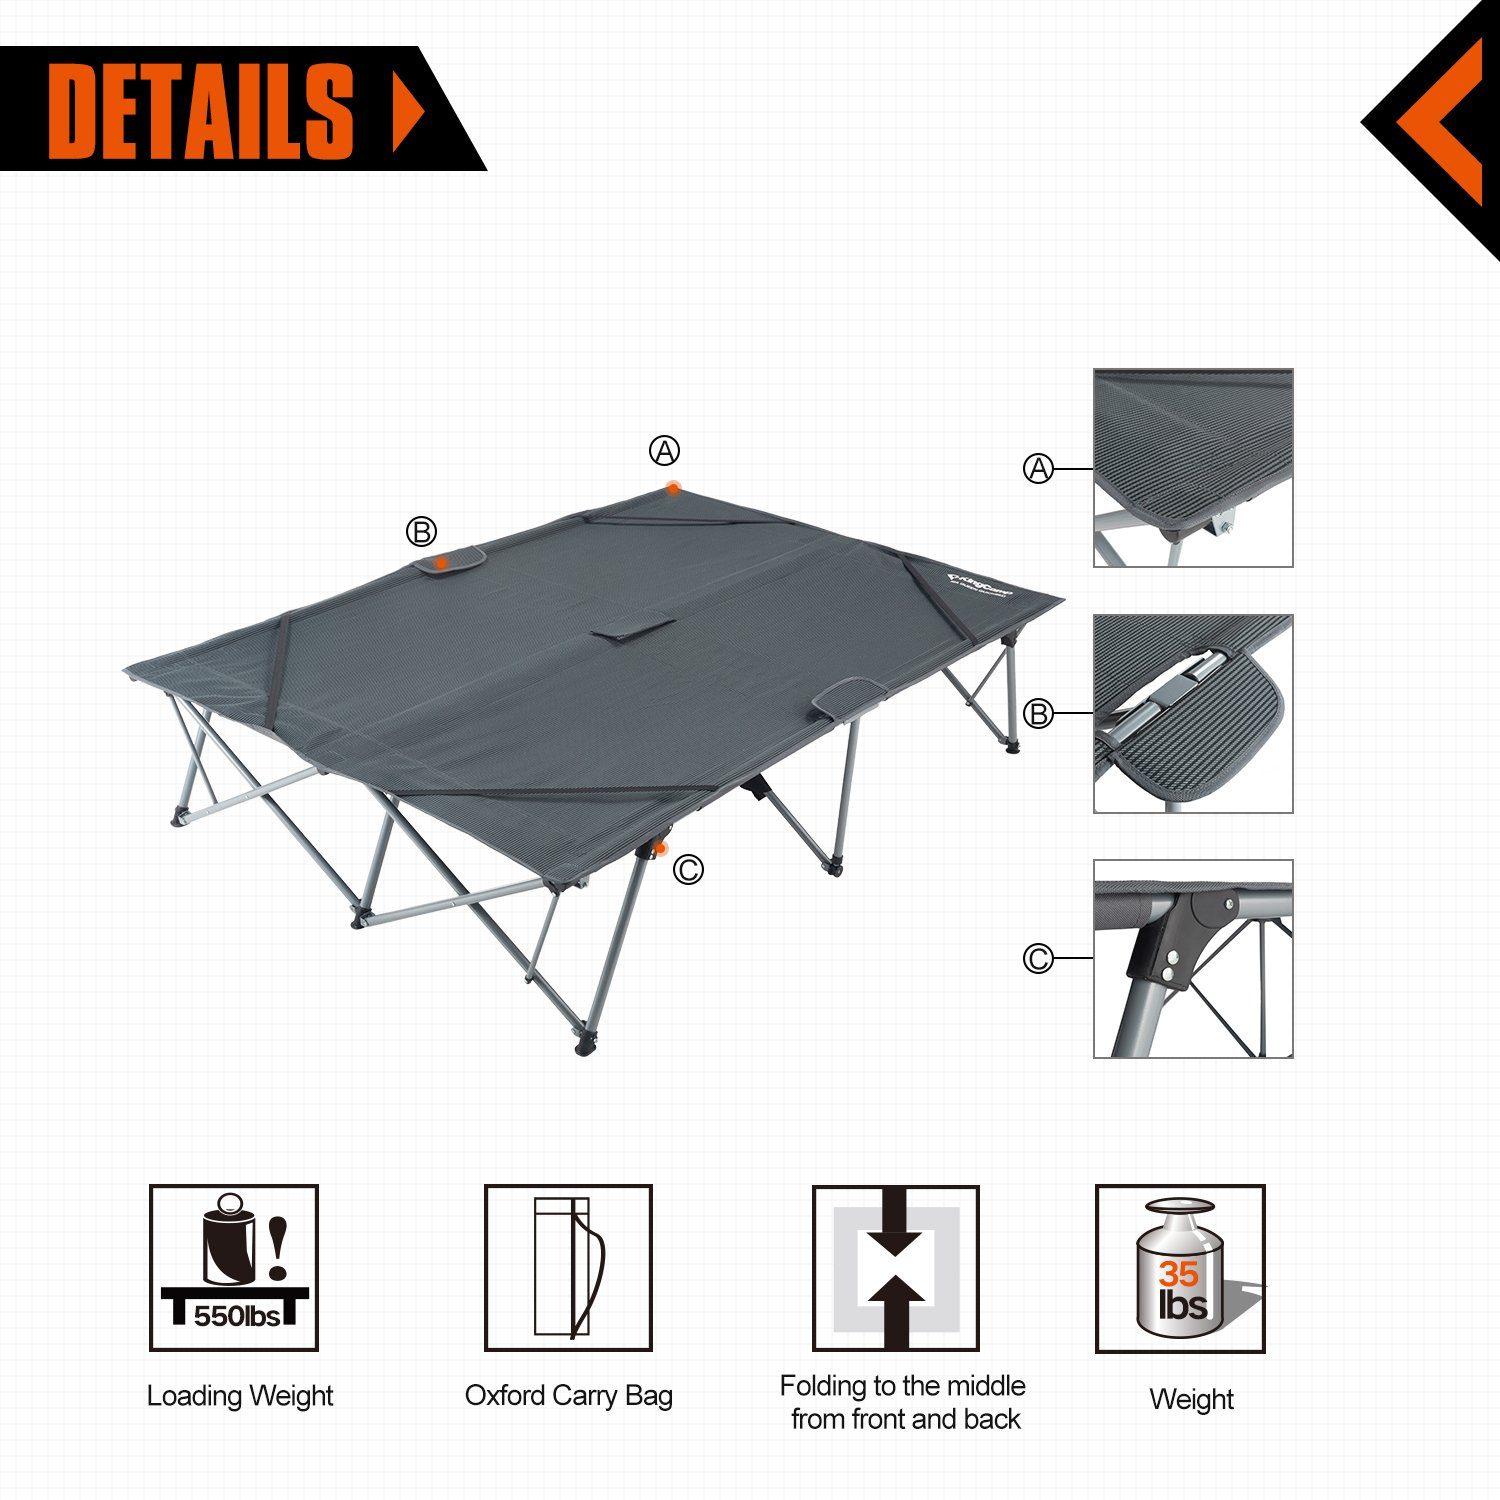 KingCamp Camping Cot Double 2 Person Oversized Anodized Steel Frame Portable Folding Bed Portable with Wheeled Carry Bag by KingCamp (Image #3)